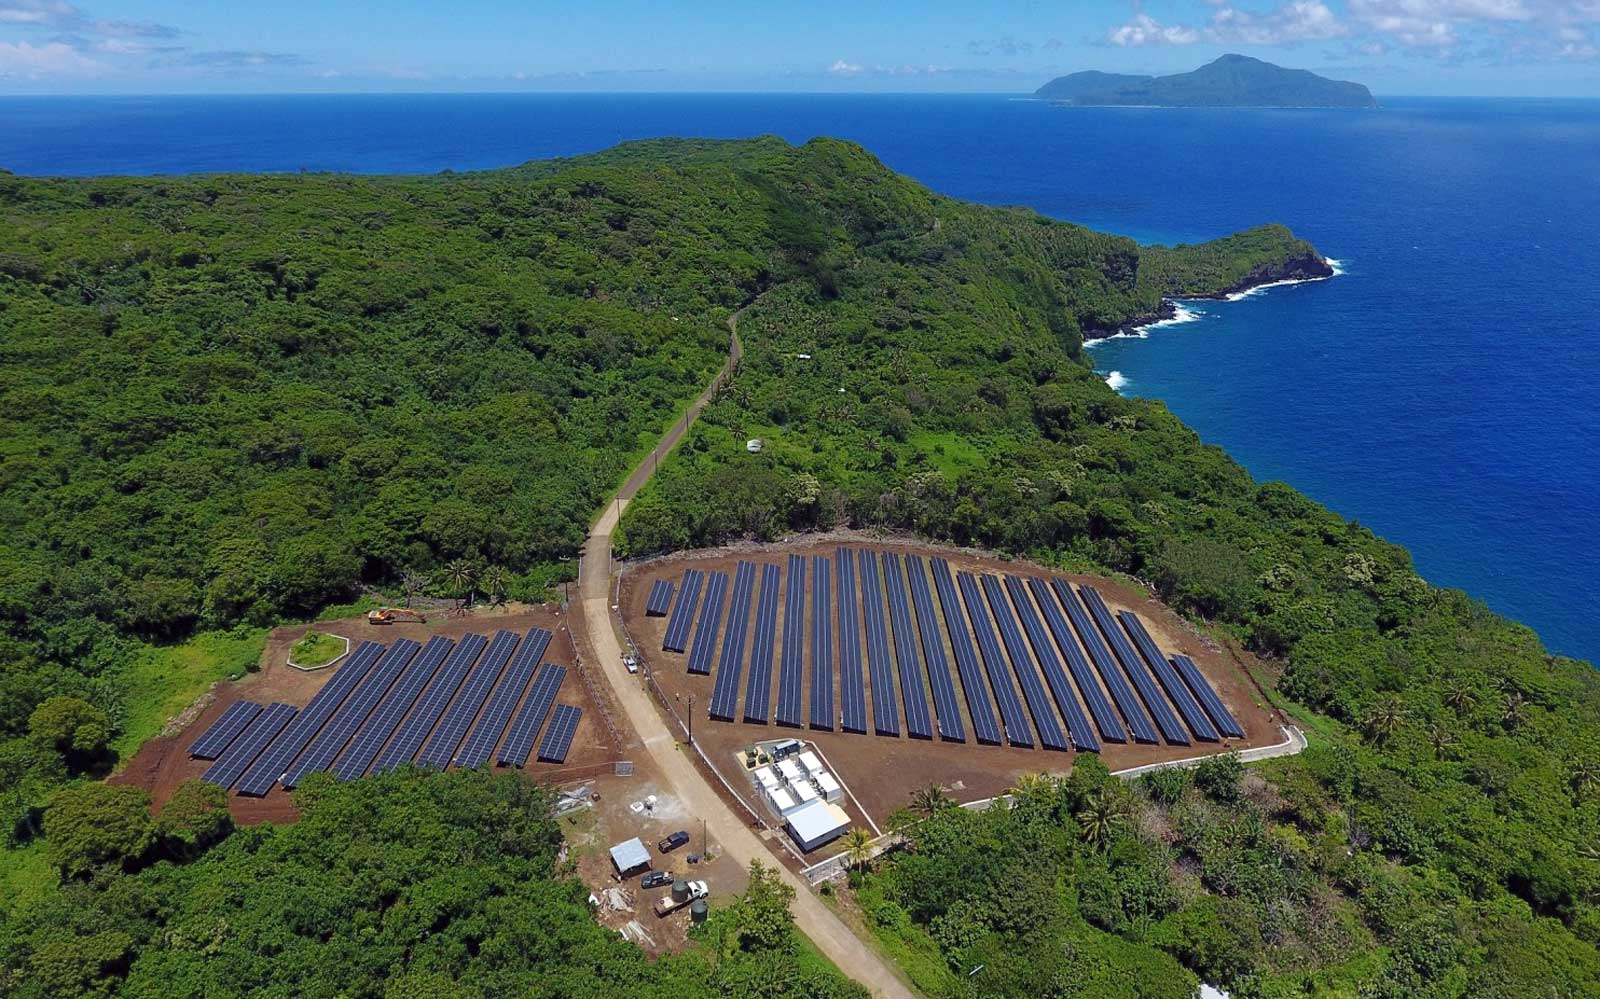 Visit this solar-powered island